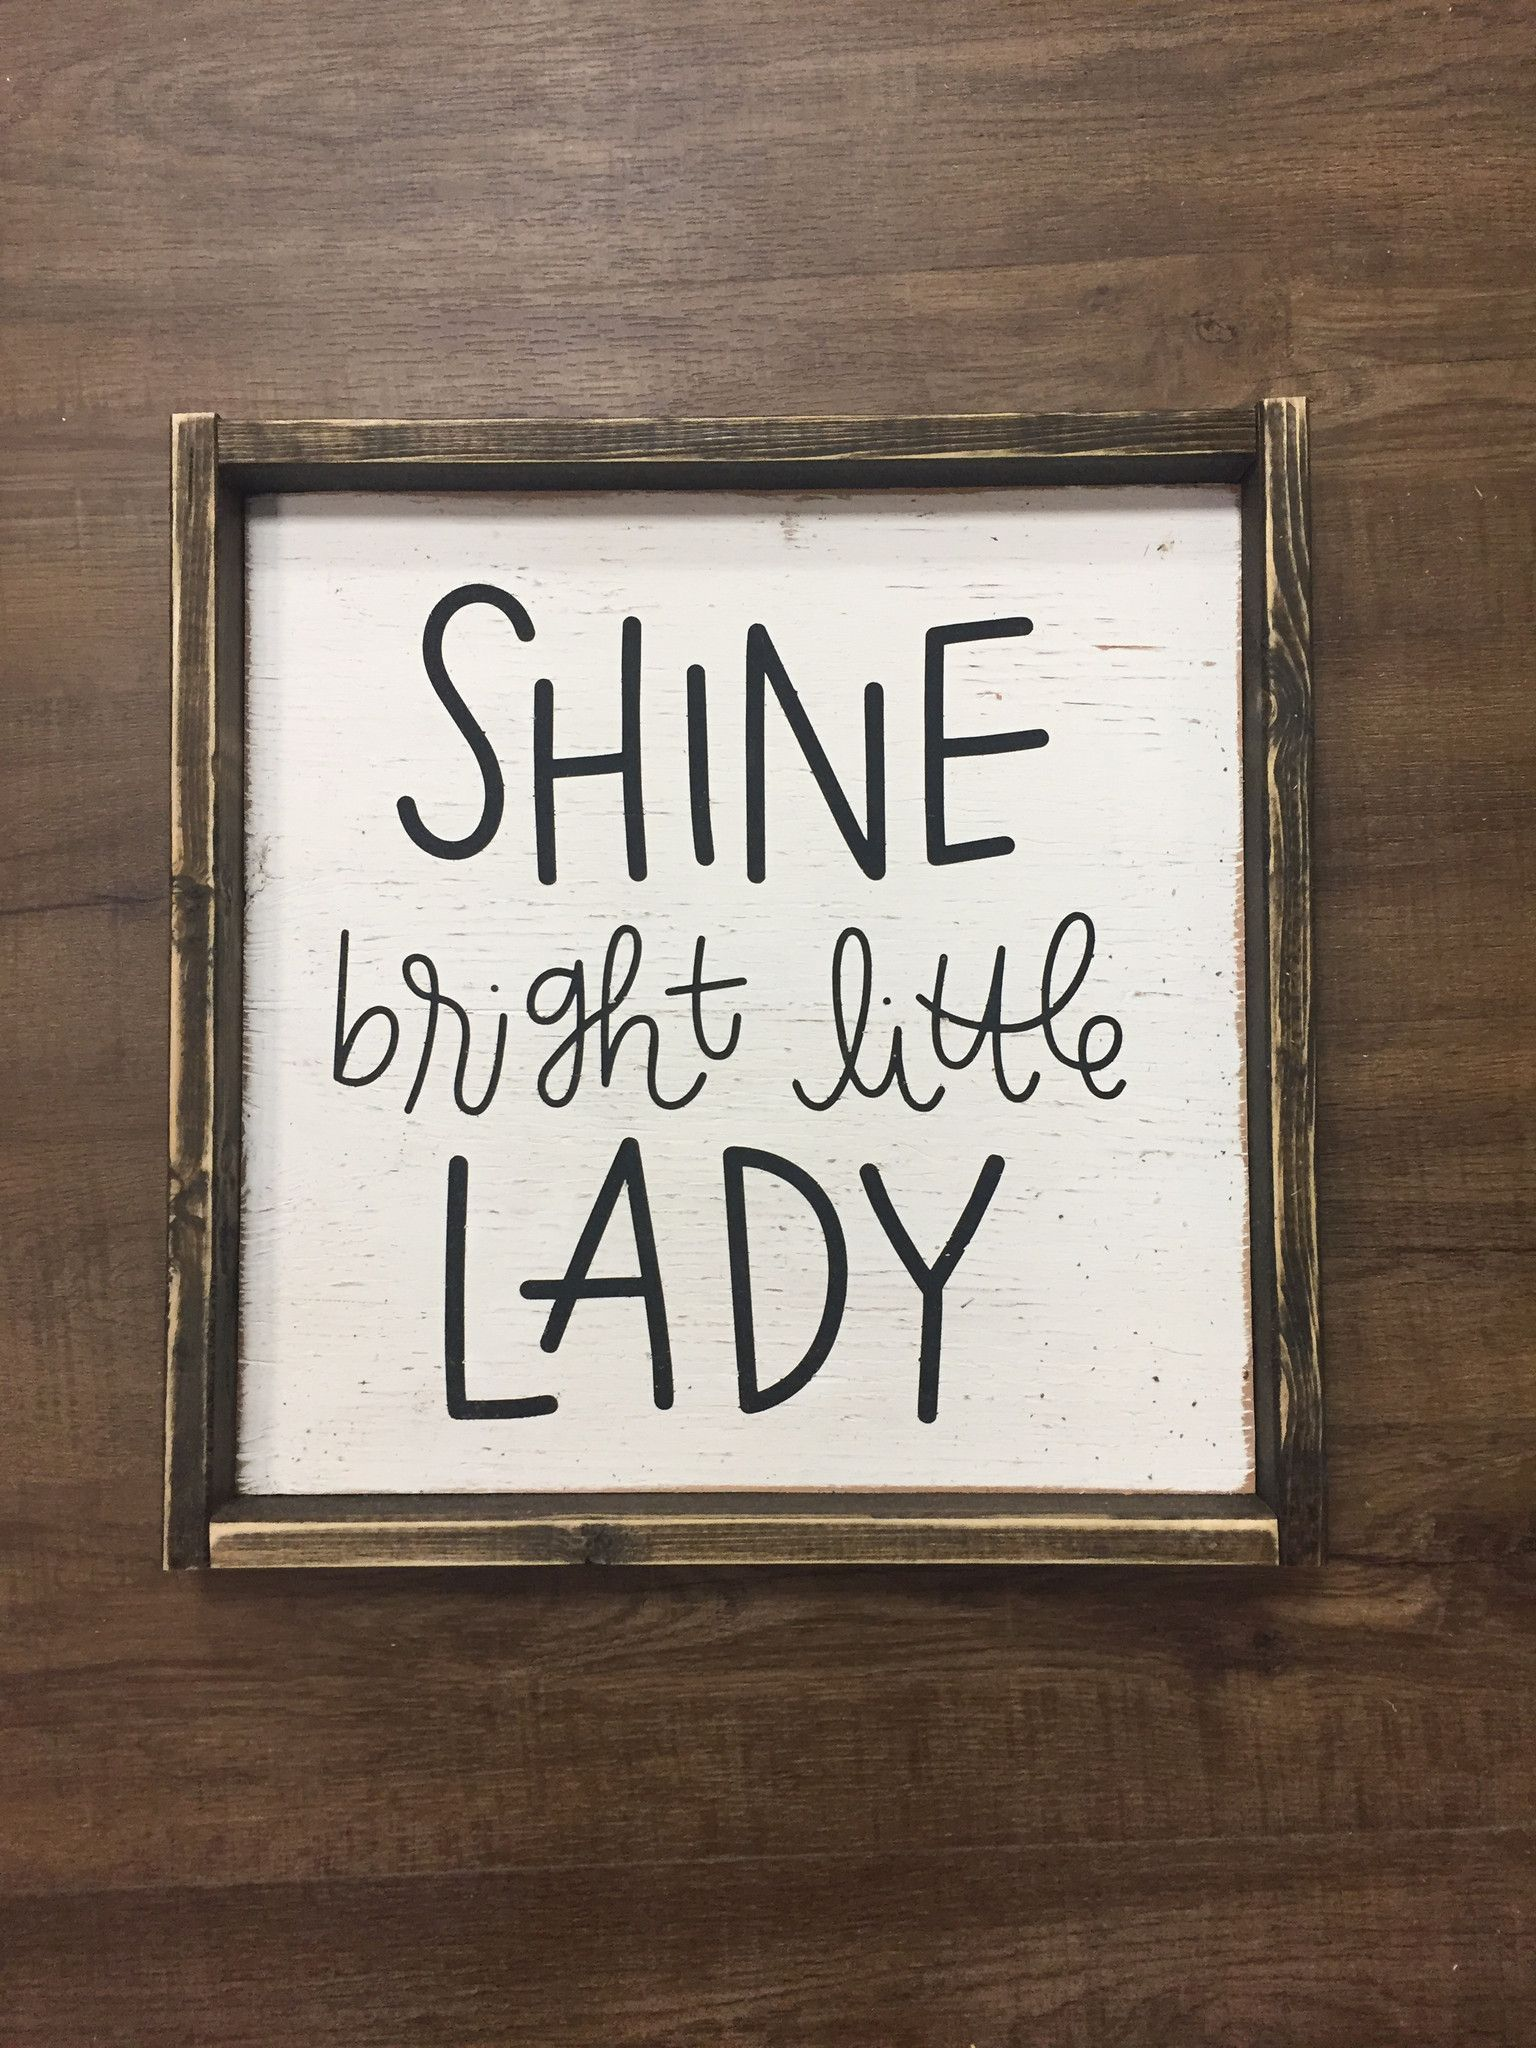 Shine Bright Little Lady images